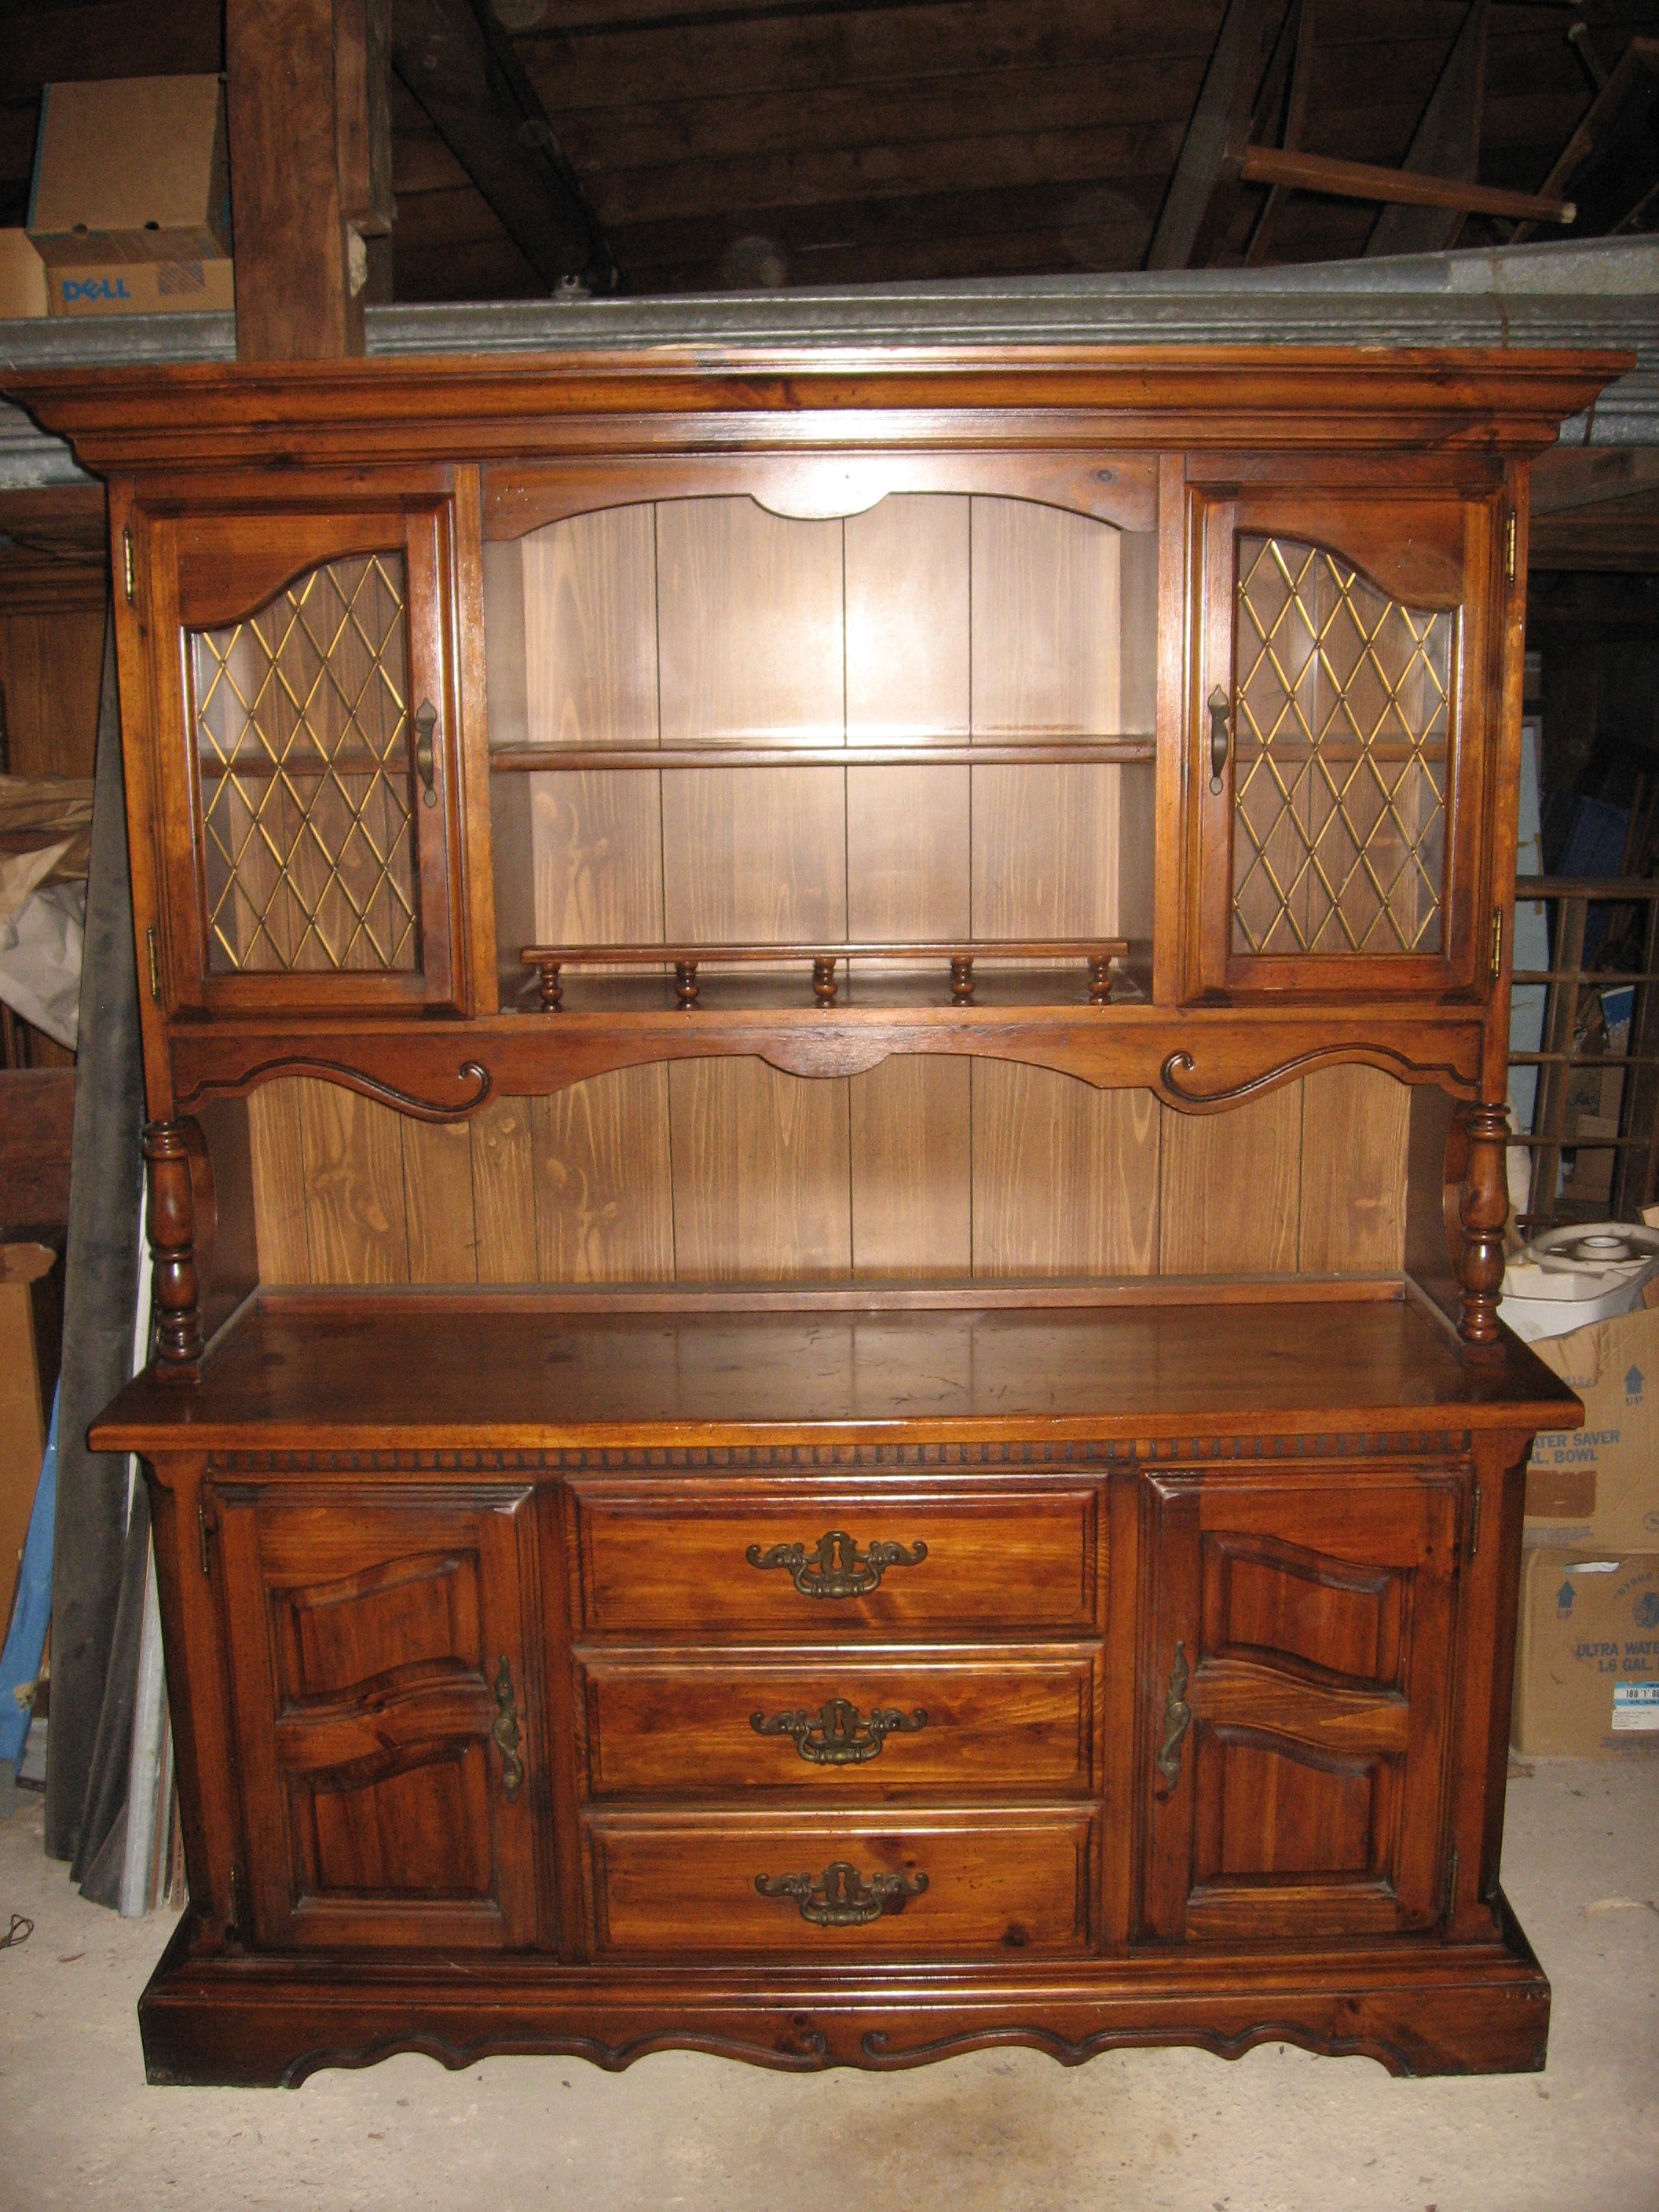 used china cabinet for sale furniture table styles. Black Bedroom Furniture Sets. Home Design Ideas